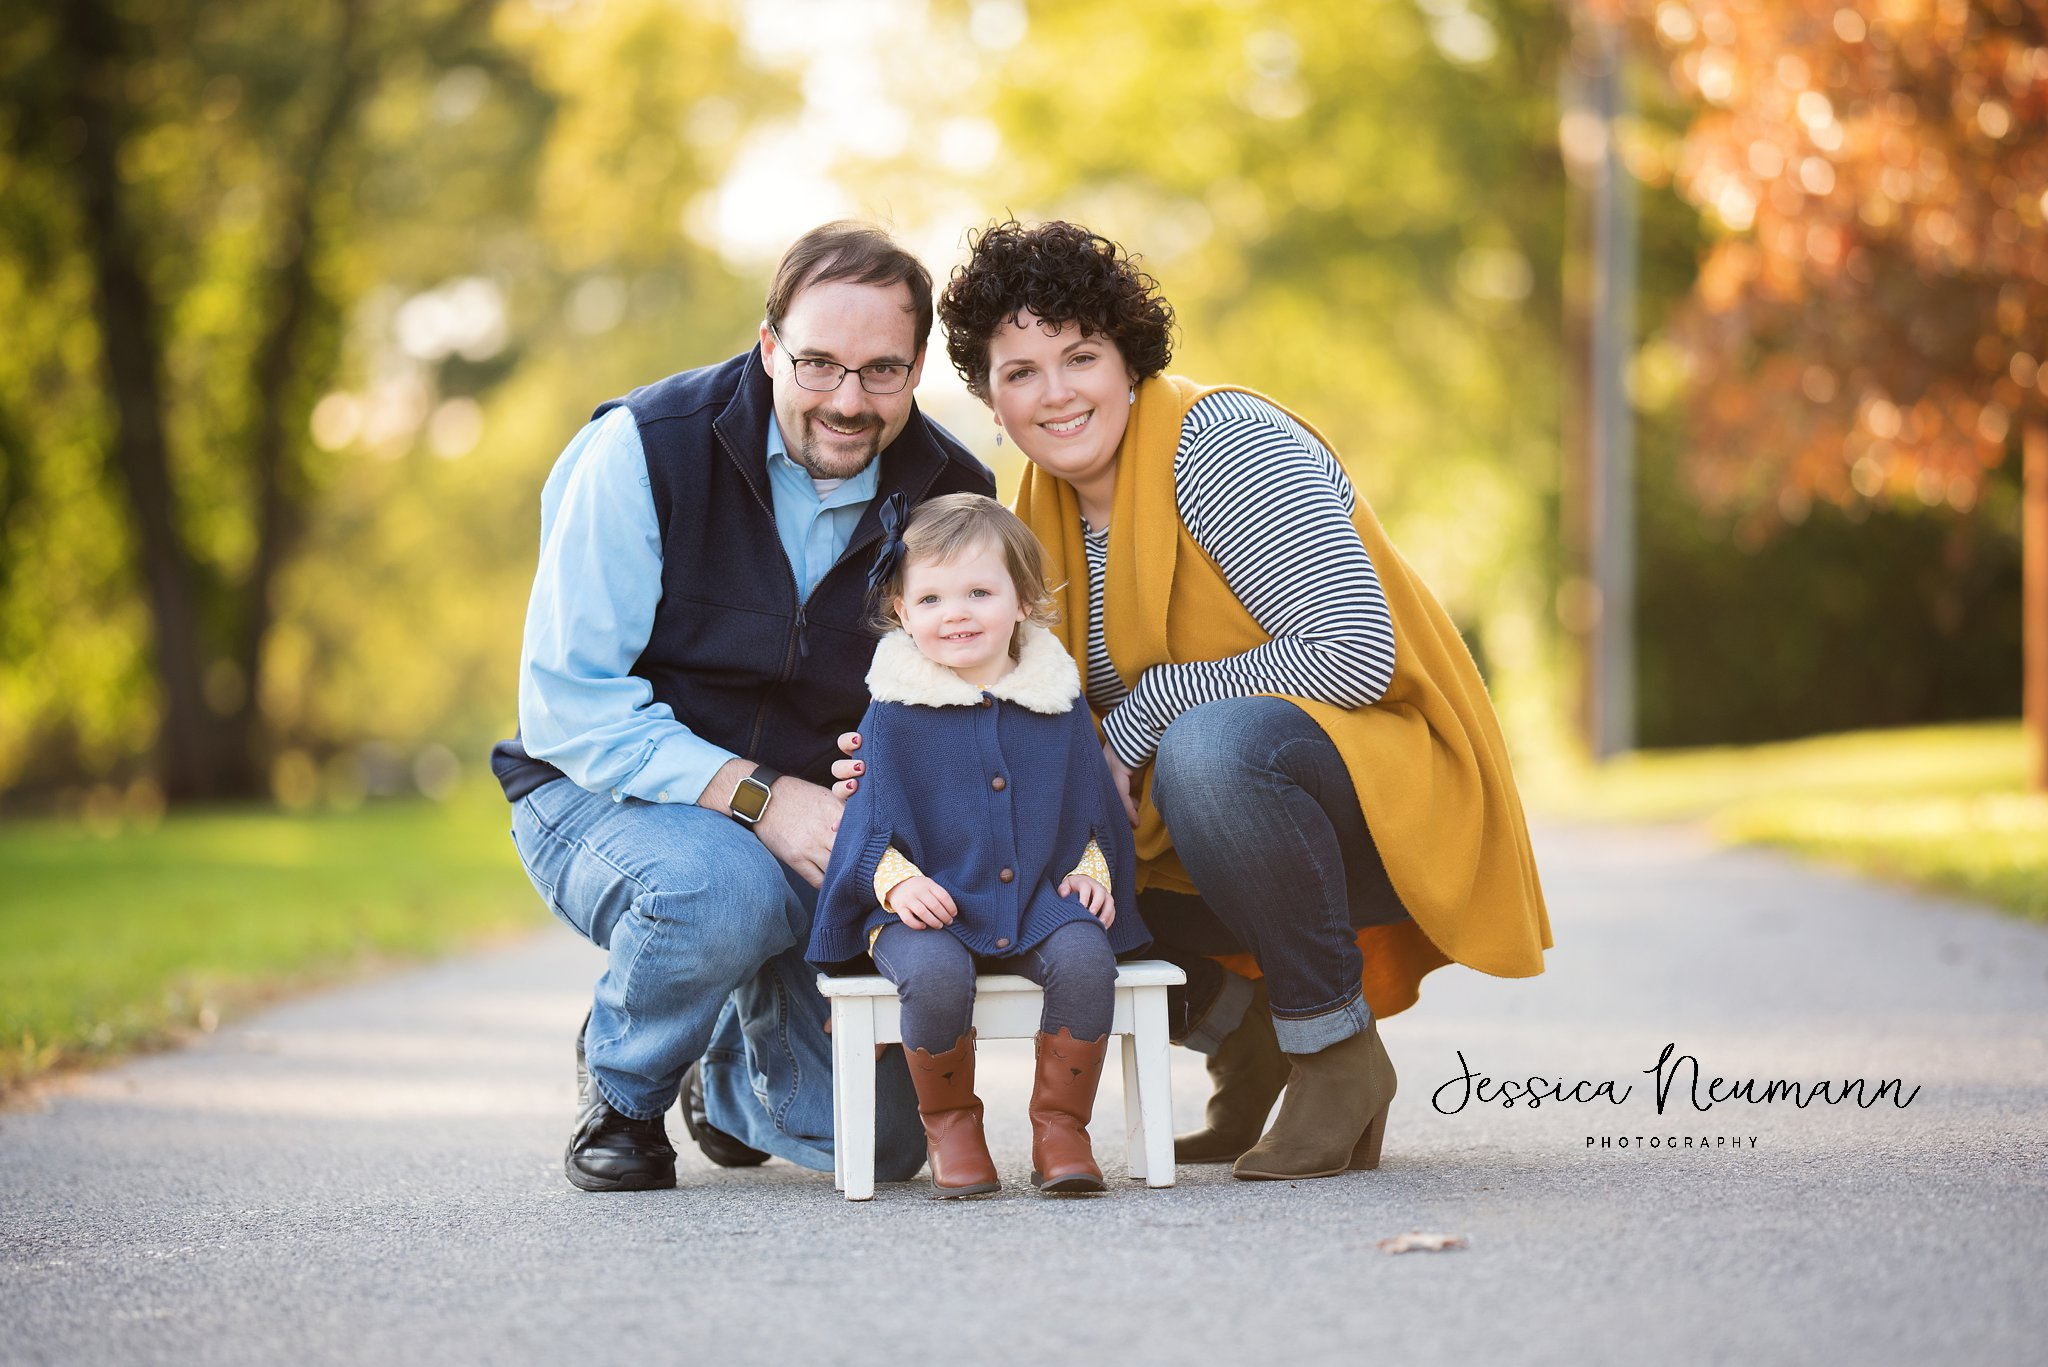 Family photo session in New Market, MD